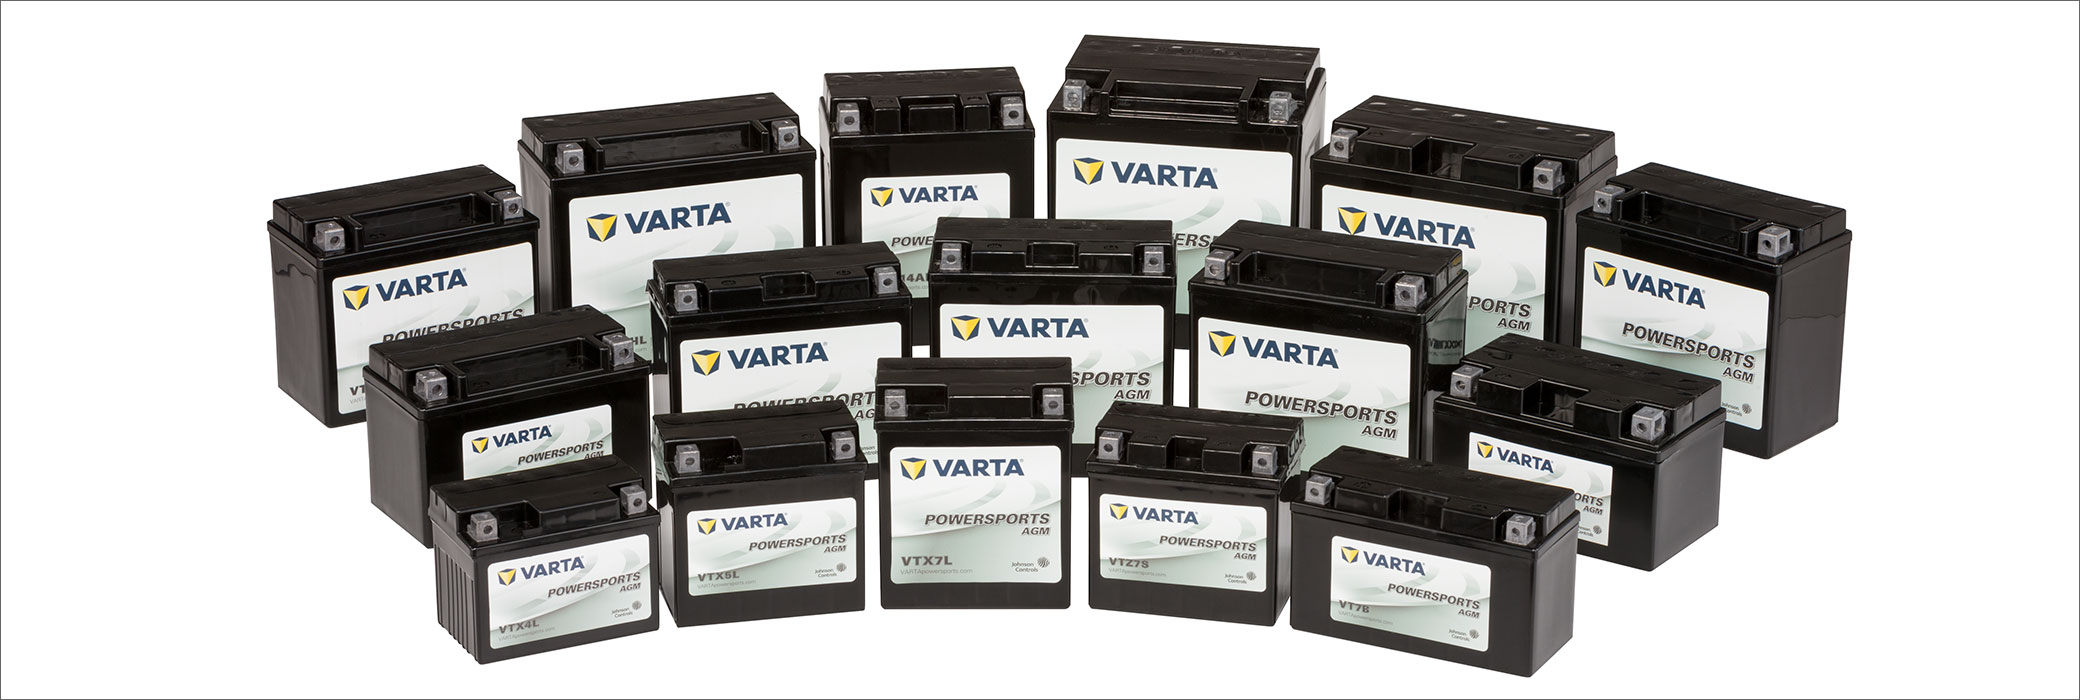 The advanced technology inside VARTA® batteries delivers great starts, longer life and exceptional power.